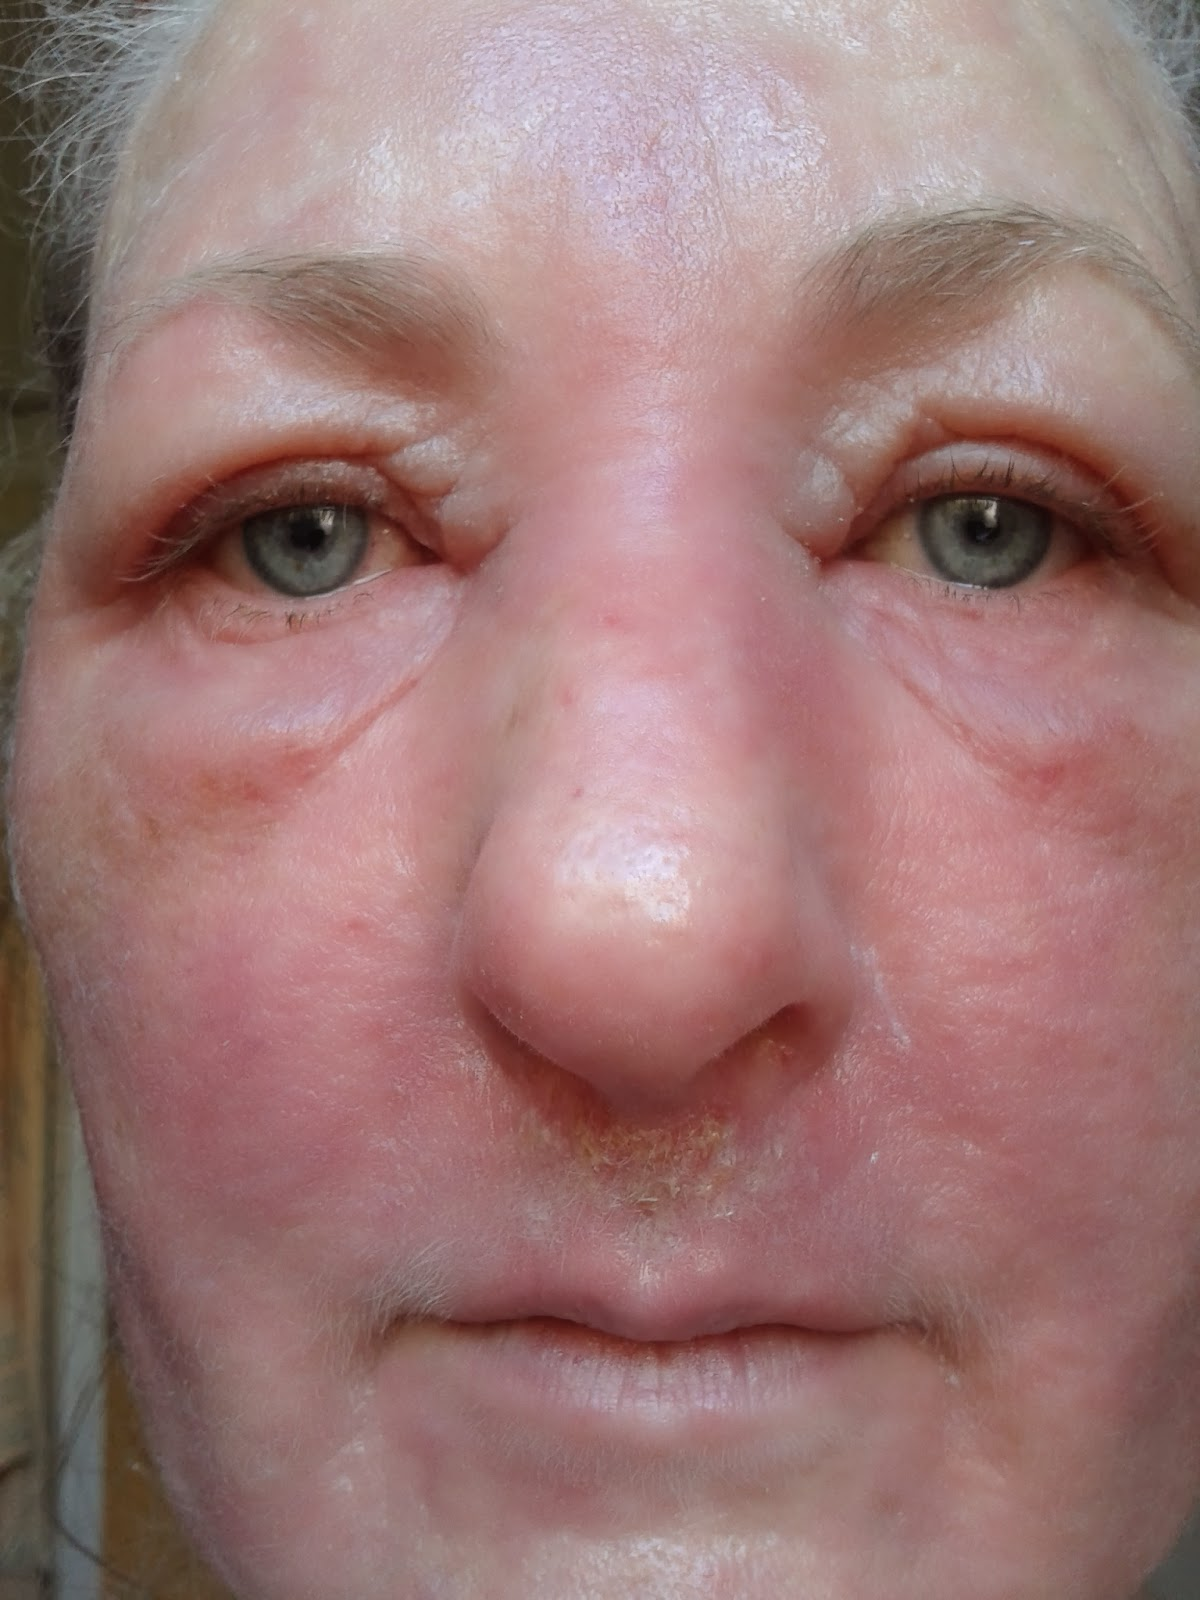 topical steroid withdrawal and recovery: February 2014